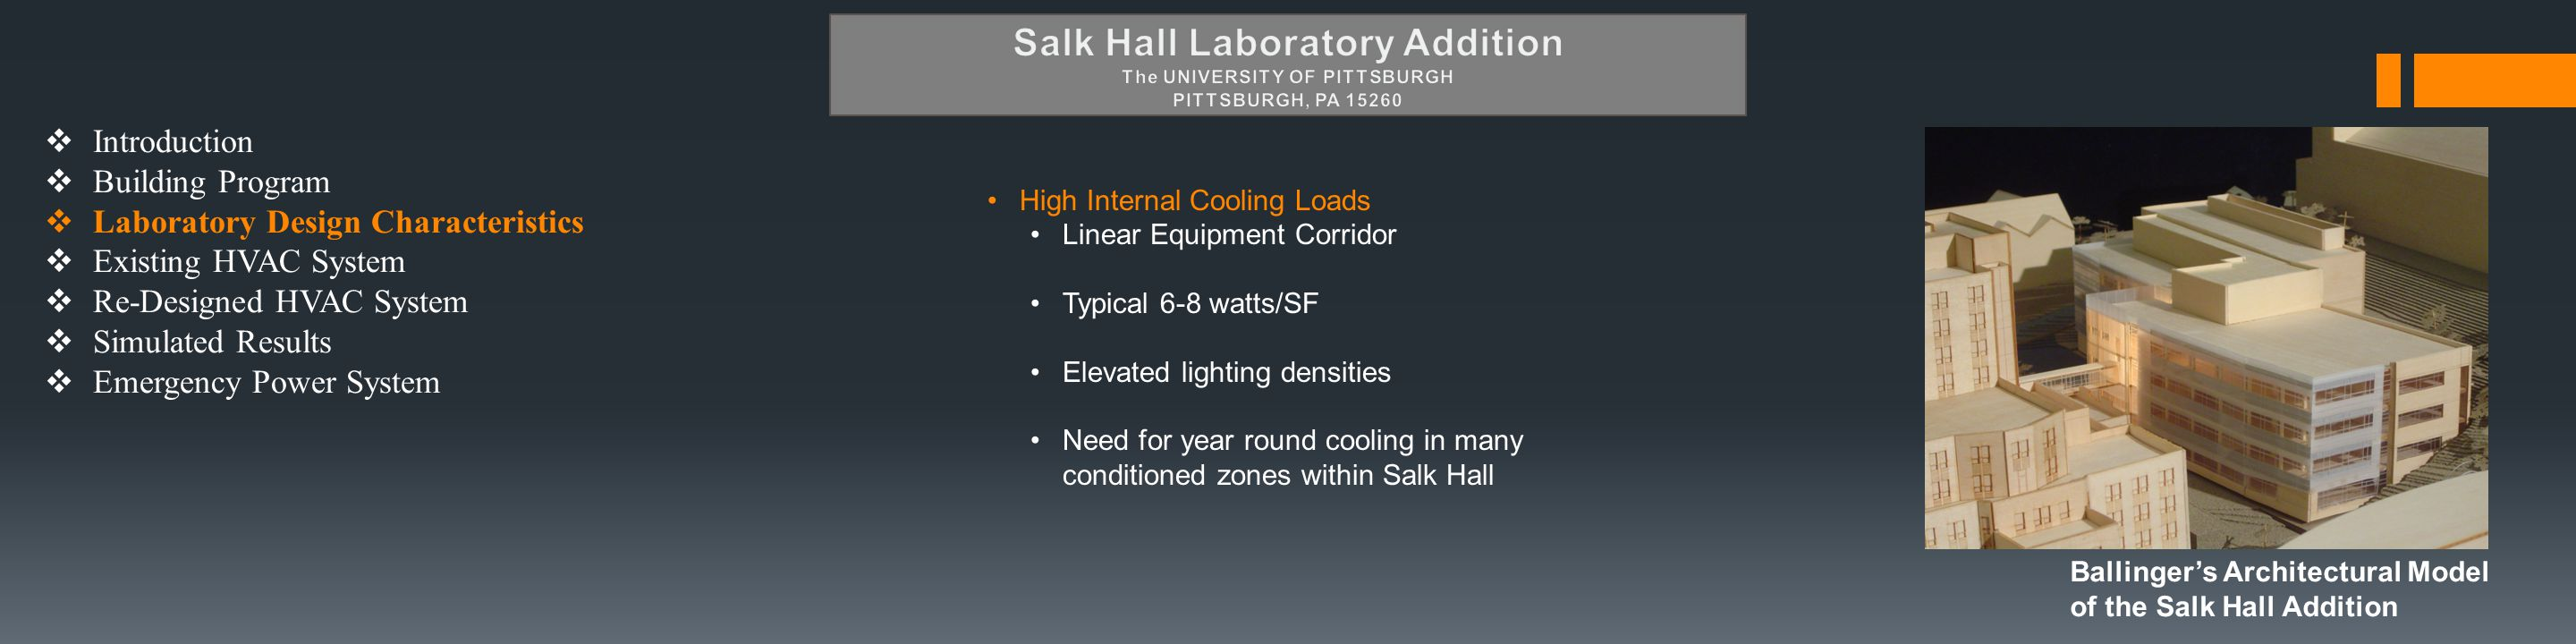  Introduction  Building Program  Laboratory Design Characteristics  Existing HVAC System  Re-Designed HVAC System  Simulated Results  Emergency Power System High Internal Cooling Loads Linear Equipment Corridor Typical 6-8 watts/SF Elevated lighting densities Need for year round cooling in many conditioned zones within Salk Hall Ballinger's Architectural Model of the Salk Hall Addition